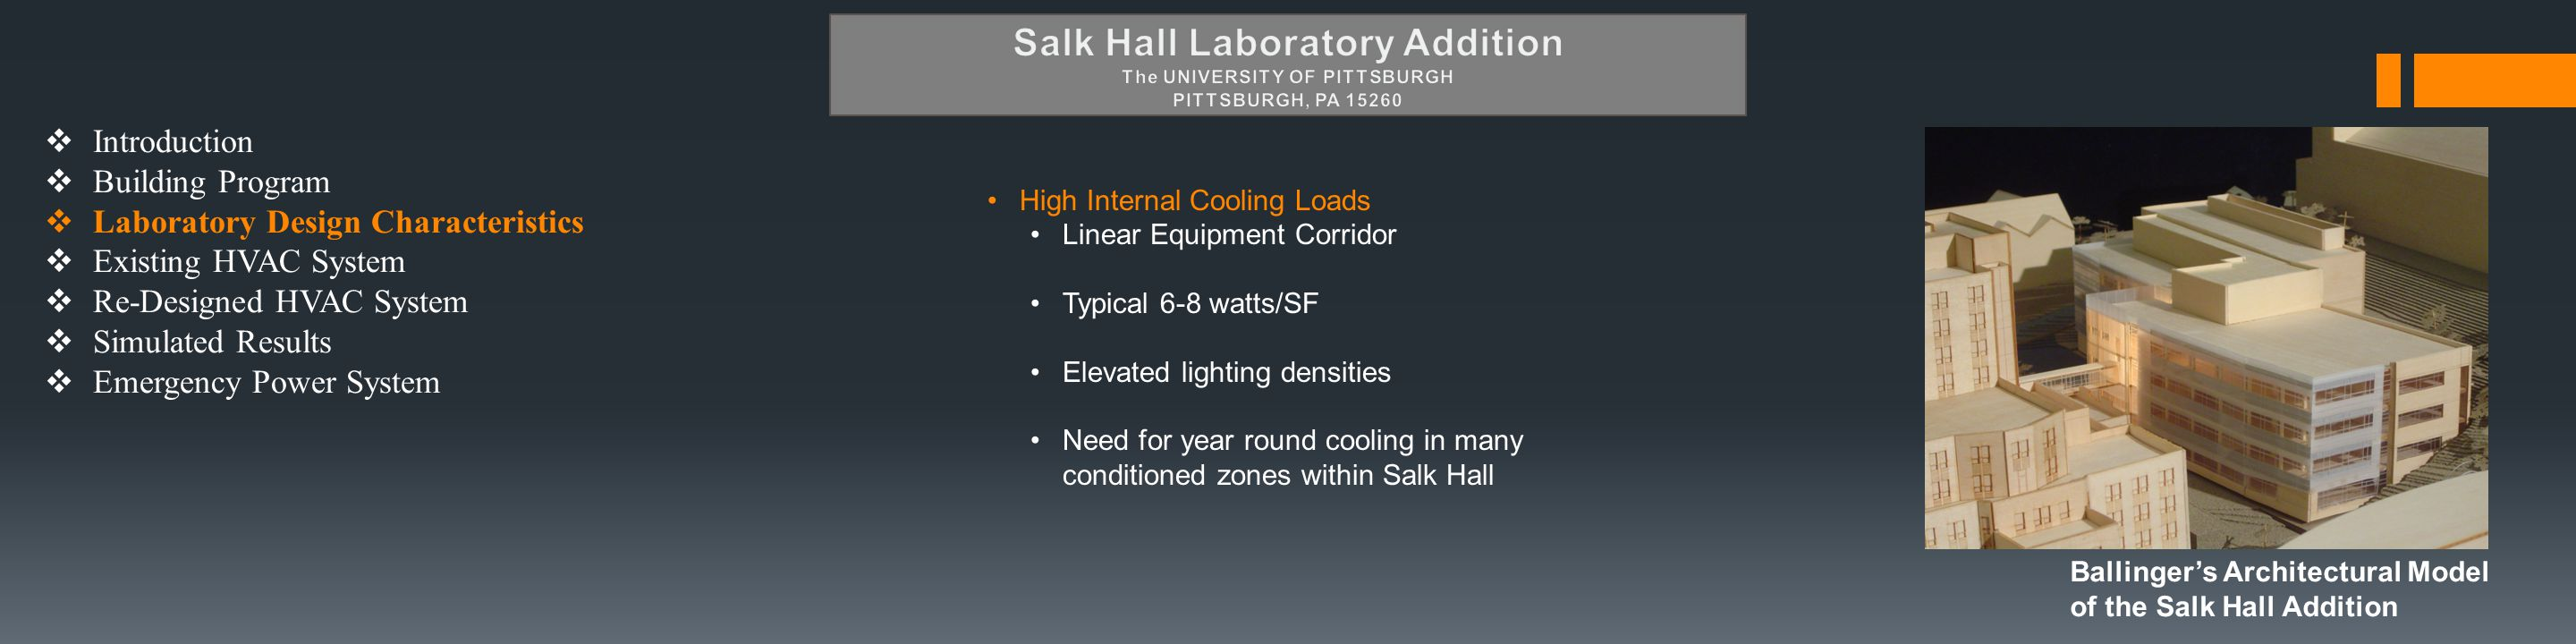  Introduction  Building Program  Laboratory Design Characteristics  Existing HVAC System  Re-Designed HVAC System  Simulated Results  Emergency Power System High Internal Cooling Loads Linear Equipment Corridor Typical 6-8 watts/SF Elevated lighting densities Need for year round cooling in many conditioned zones within Salk Hall Ballinger's Architectural Model of the Salk Hall Addition